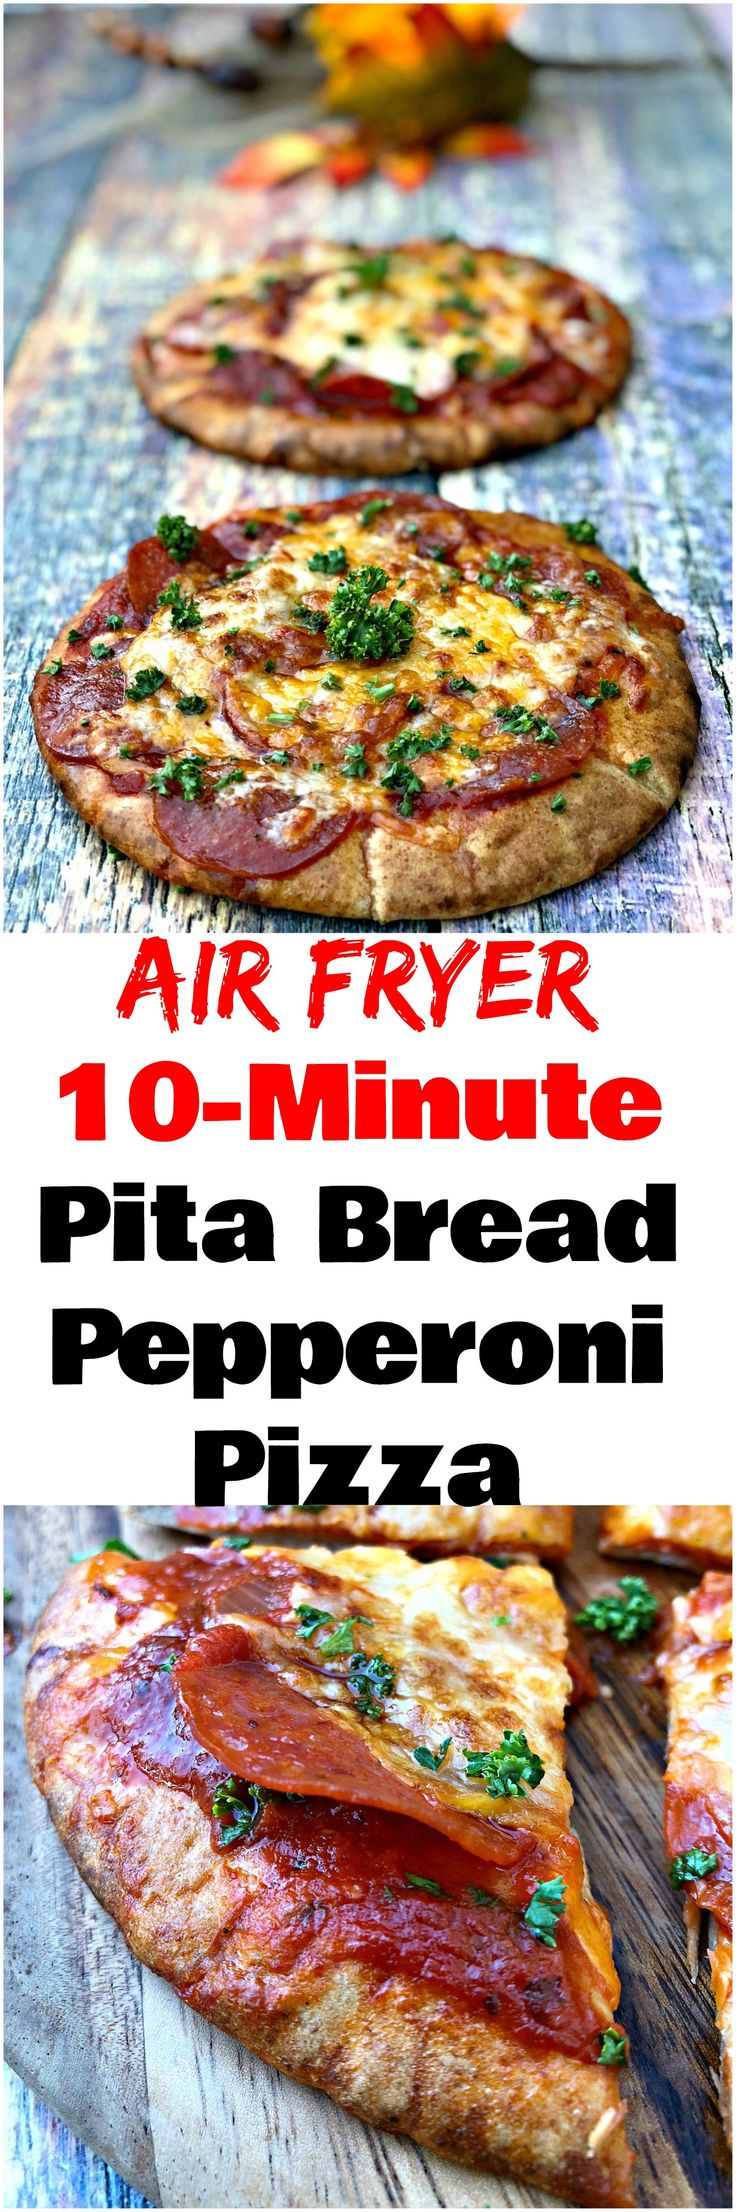 Air Fryer 10-Minute Whole Wheat Pita Bread Pepperoni Pizza is a quick and easy healthy recipe with a crispy crust that is perfect for weeknight dinners and an on-the-go lifestyle. This recipe only uses 5 ingredients including marinara pizza sauce, gooey mozzarella cheese, and pepperoni. #AirFryer #AirFryerRecipes #Pepperoni #PepperoniPizza #Pizza #HealthyRecipes